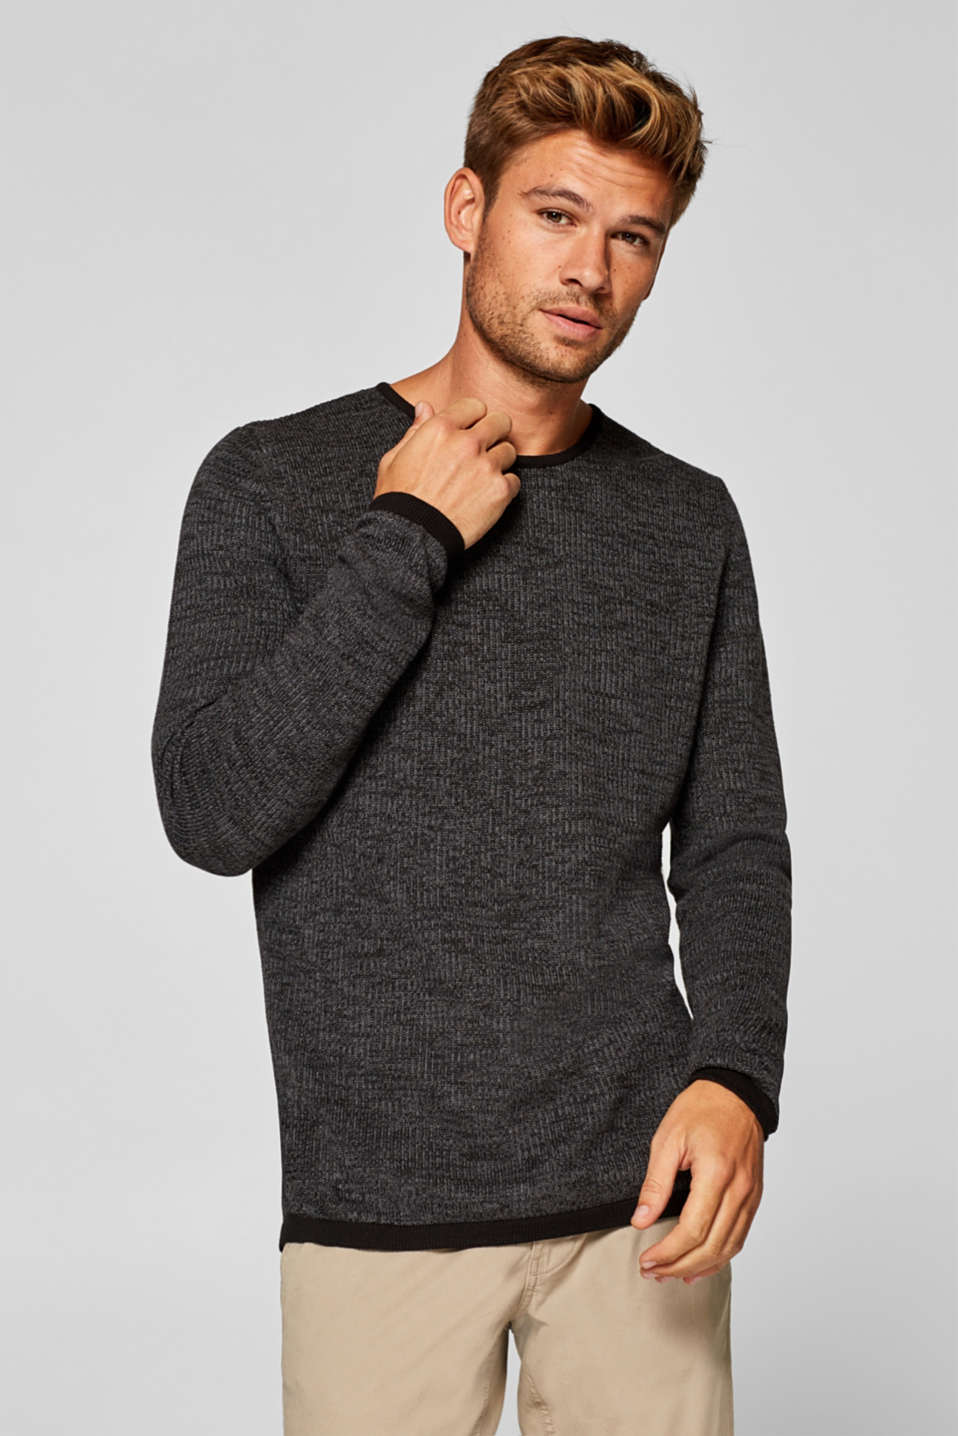 edc - Knitted jumper made of 100% cotton